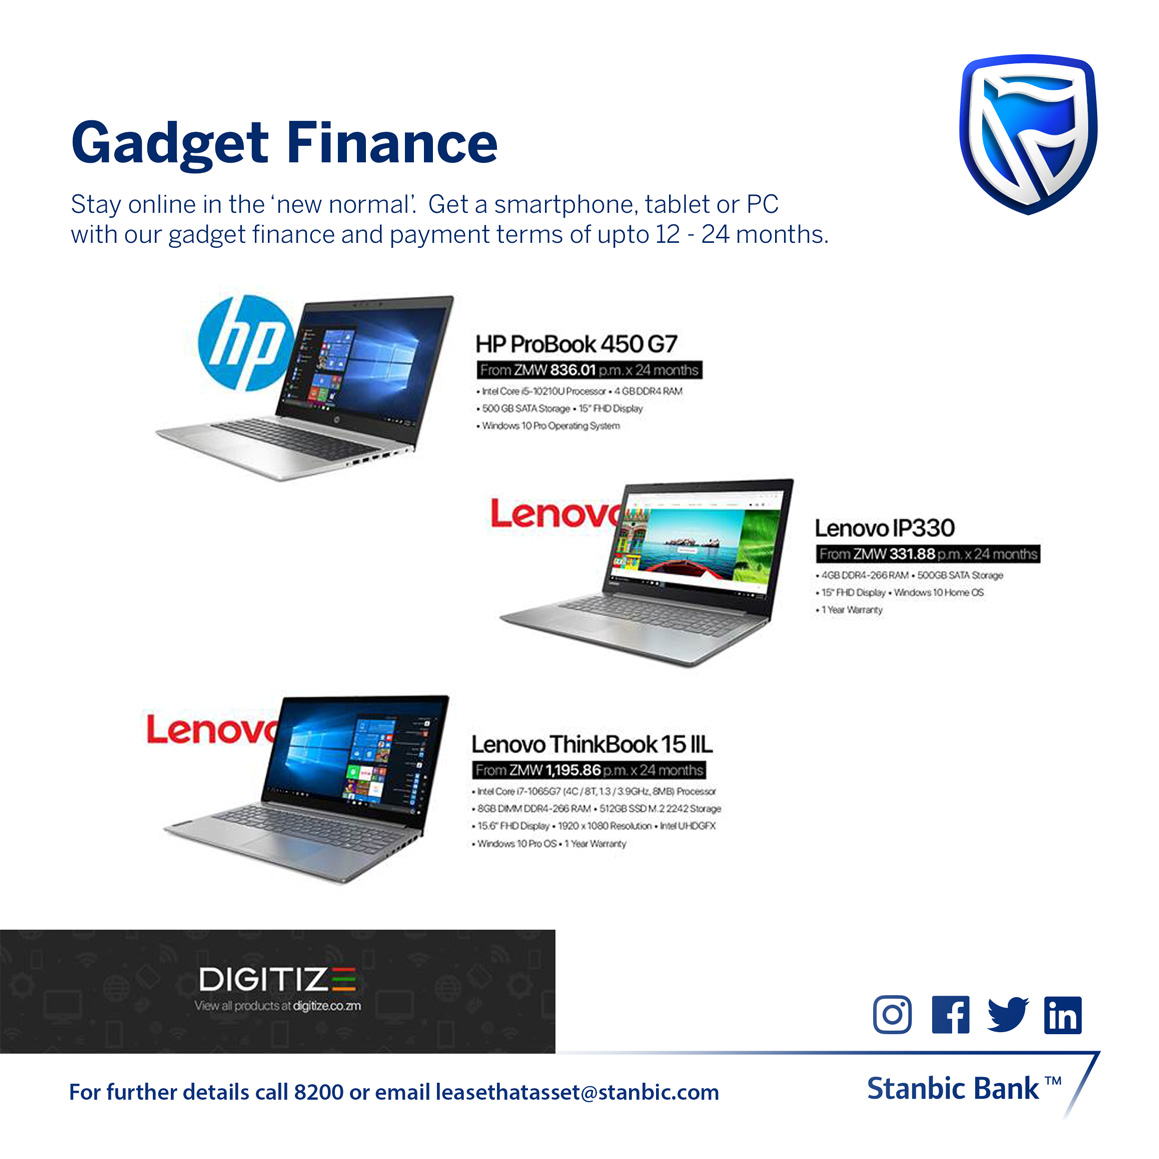 Make working and learning from home easier with our Gadget Finance. Get any internet enabled gadget from our approved suppliers and pay for it for up to 24 months. Speak to us on 8200 or email leasethatasset@stanbic.com #ItCanBe #BankingZambiapic.twitter.com/1fdEPGatiX